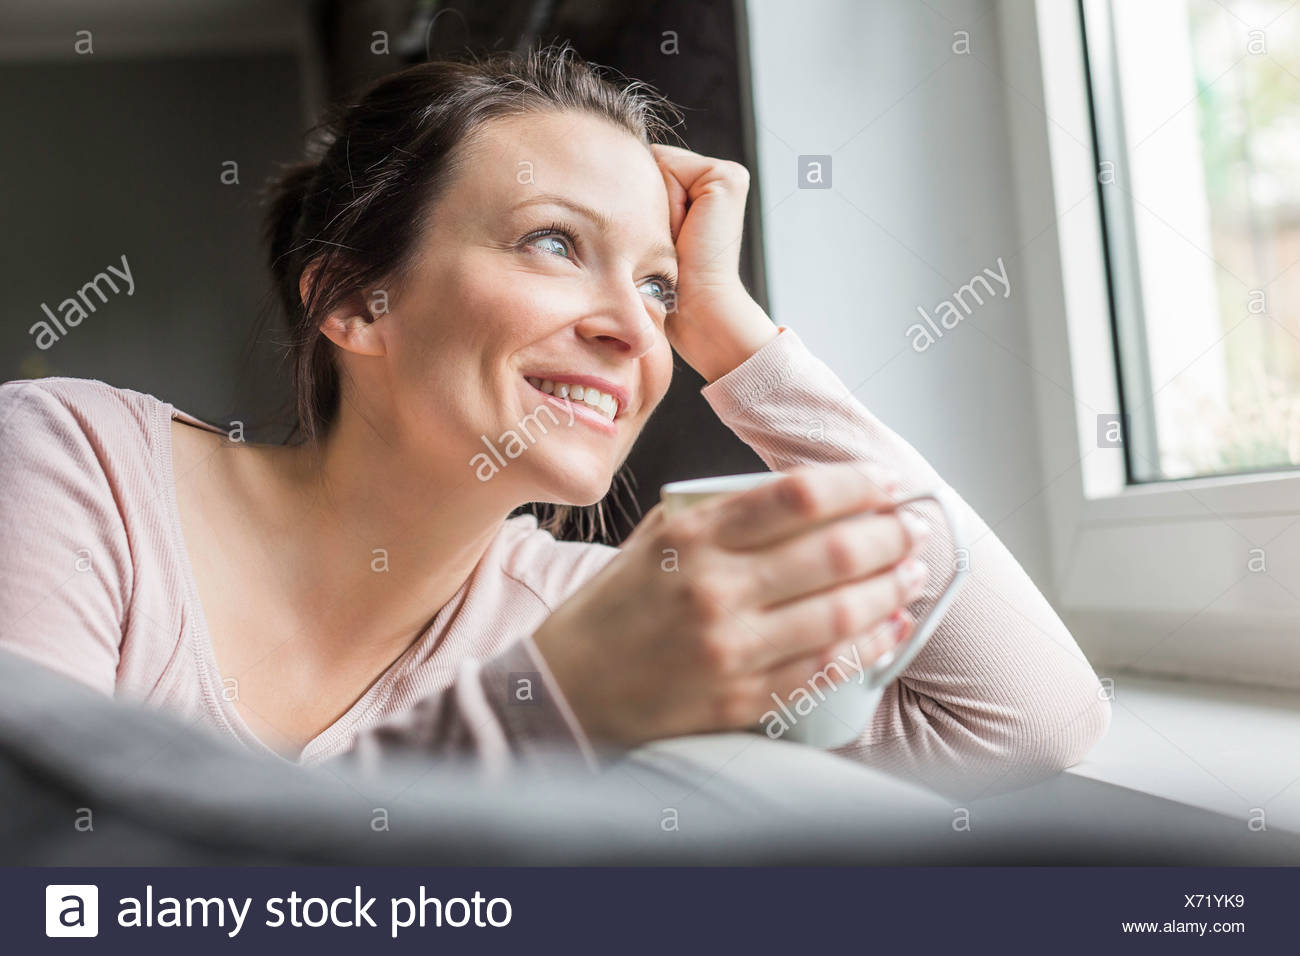 Mid adult woman looking out of window with coffee - Stock Image